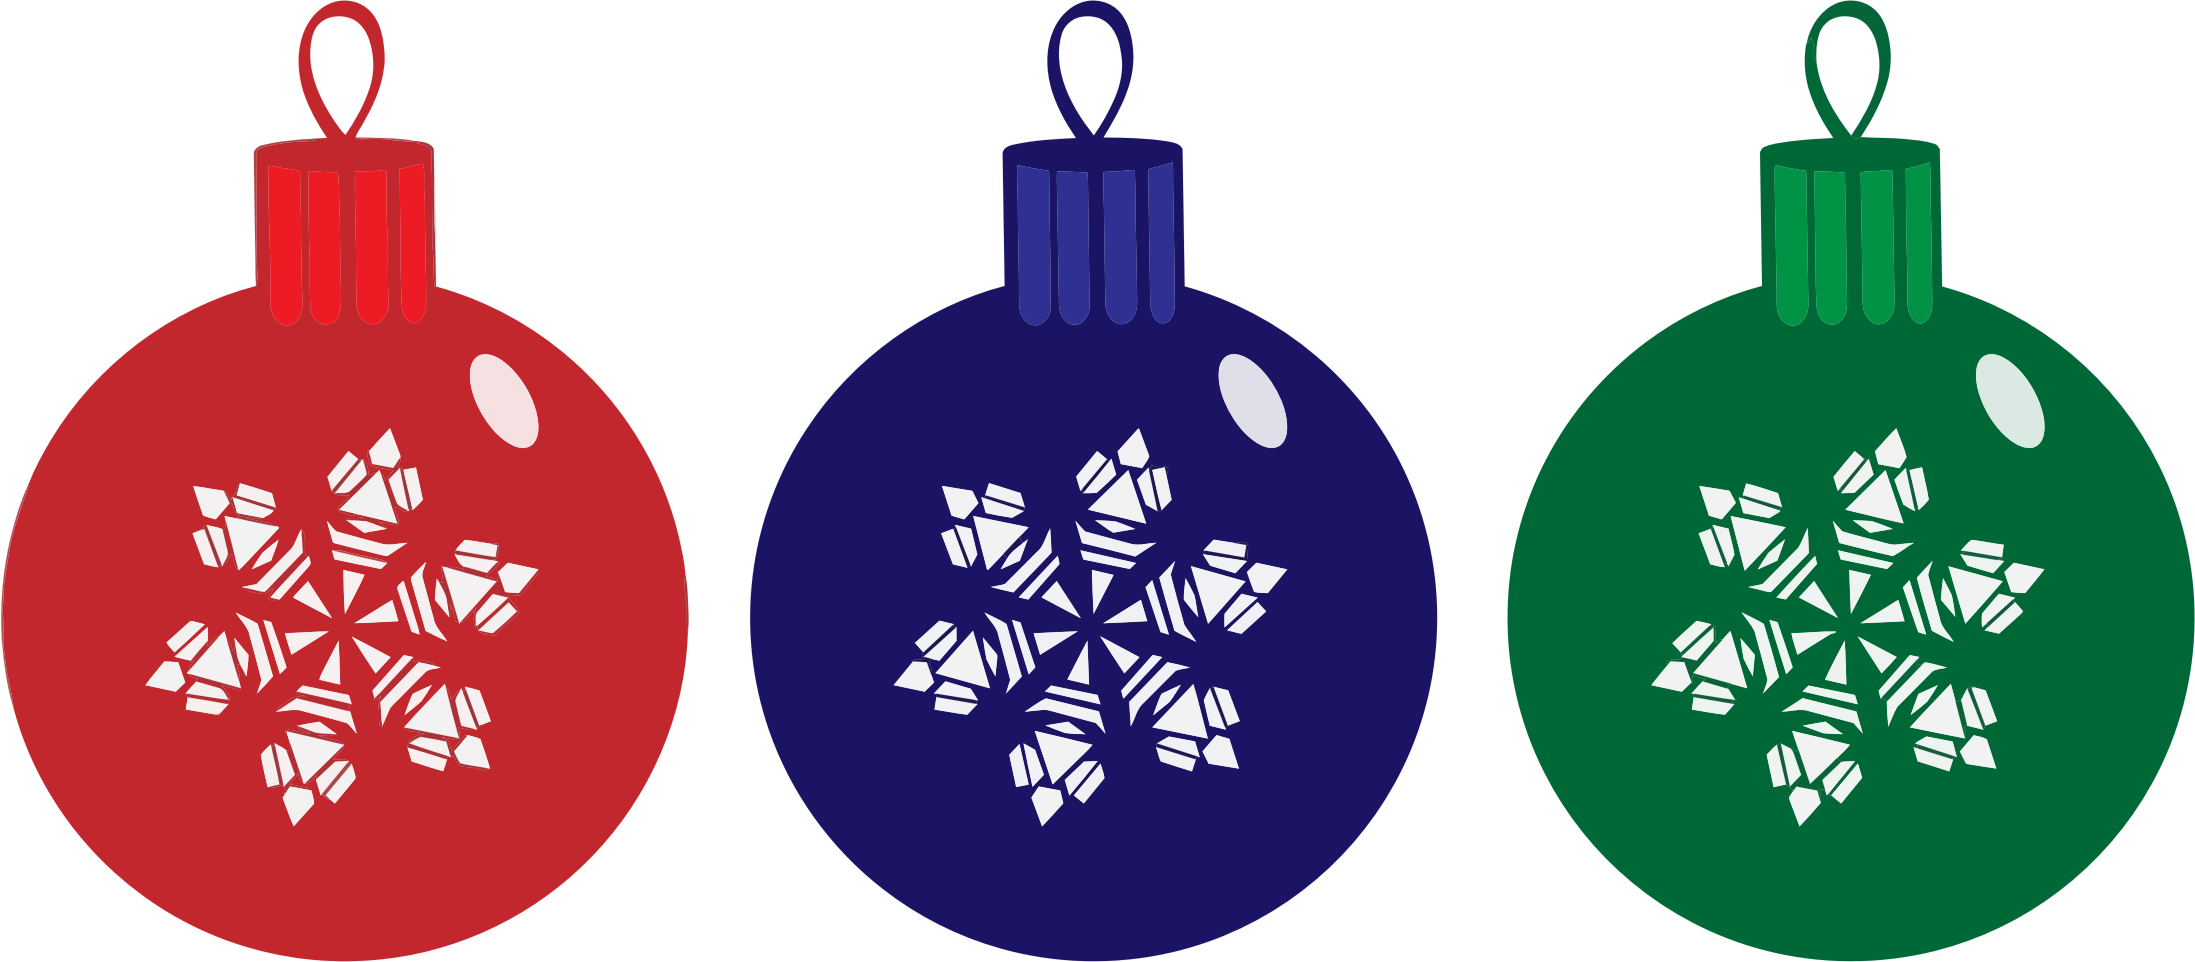 Pokeball clipart christmas. Rgb ornaments icons png